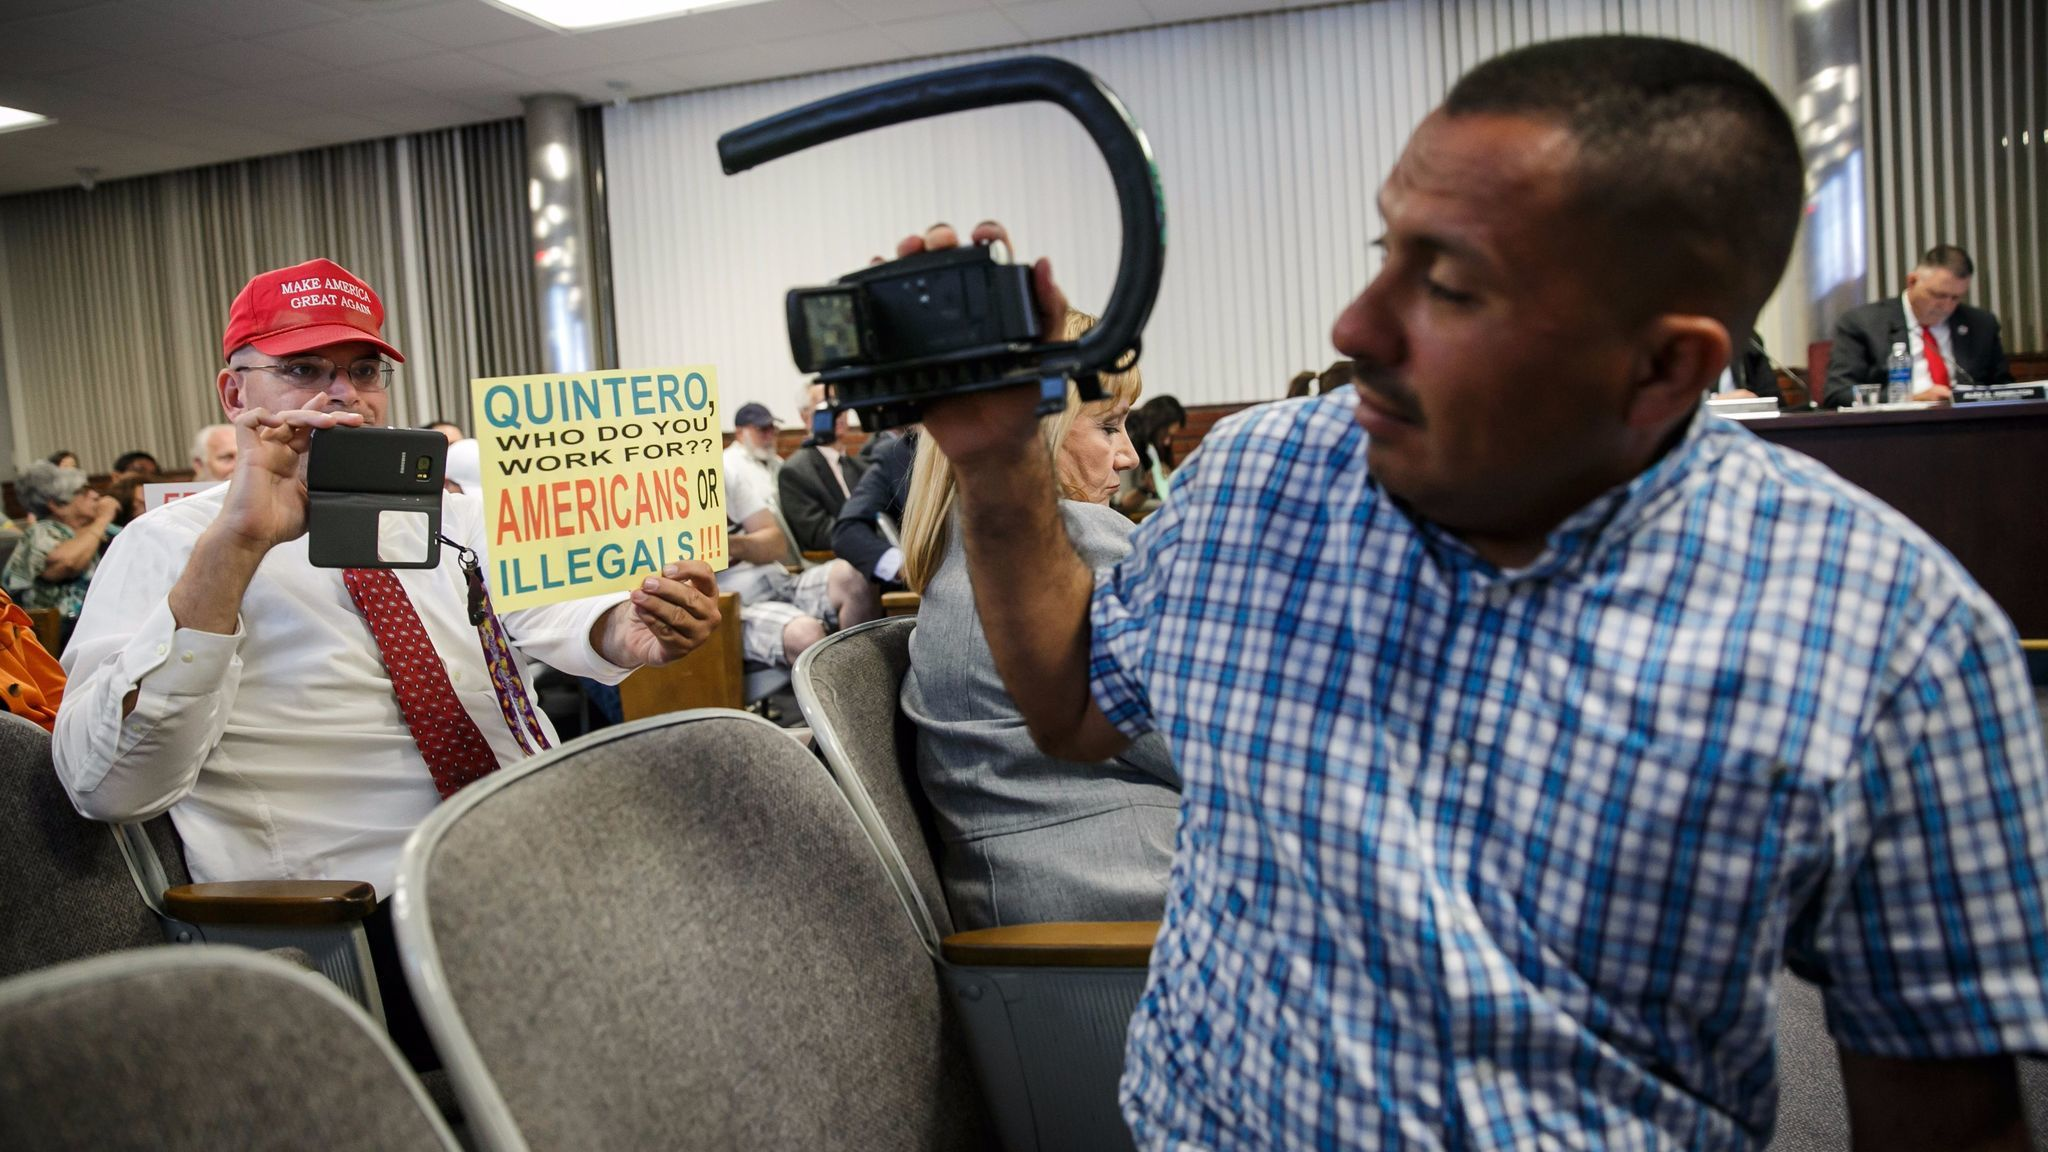 Schaper and immigrants' rights activist Naui Huitzilopochtli point their cameras at each other. Huitzilopochtli, of Santa Ana, often shows up at events specifically to record Schaper and other anti-illegal immigrant activists.